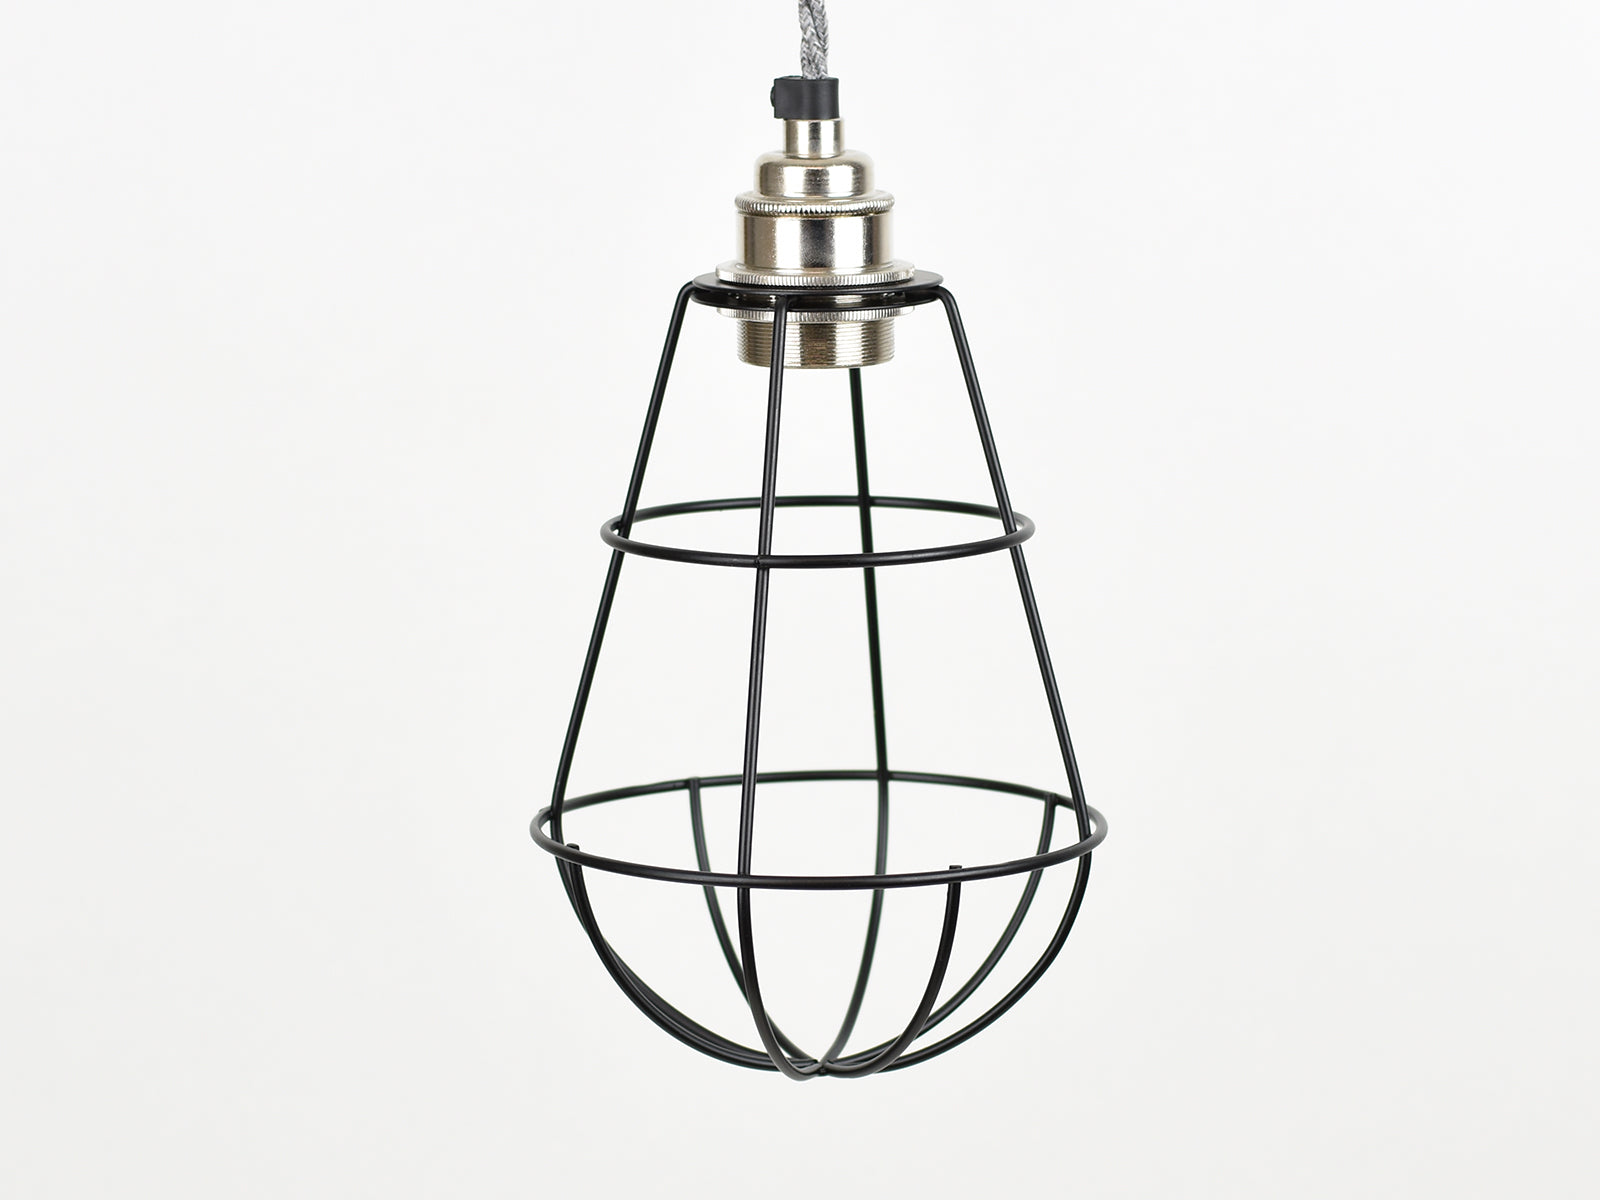 Cage Shade | Teardrop | Jet Black - Vendimia Lighting Co.